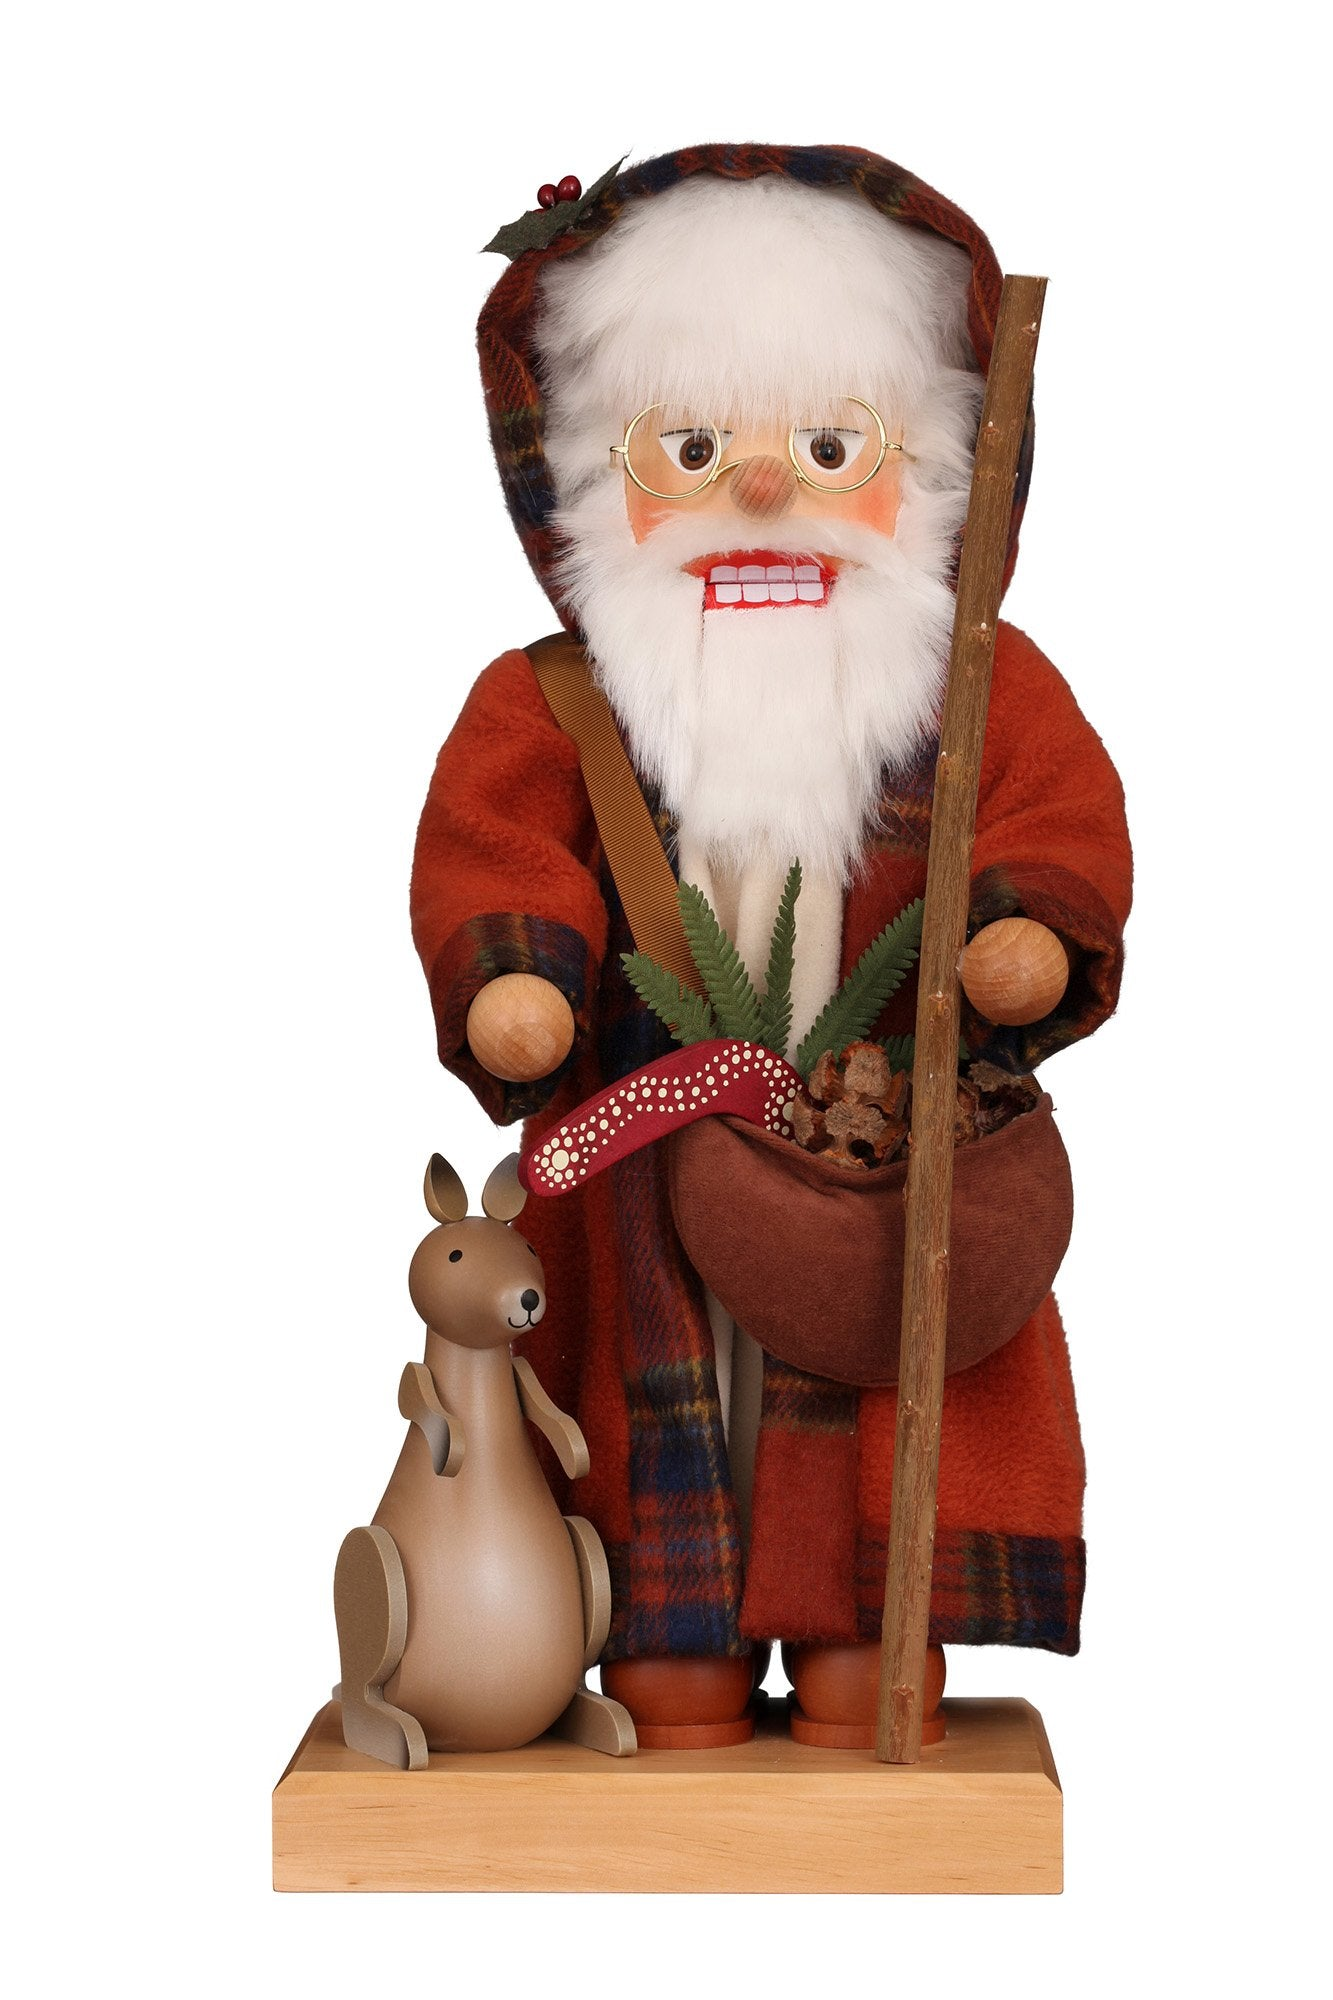 Nutcracker (Premium Collector's Edition) - Aussie Santa with Kangaroo and Boomerang